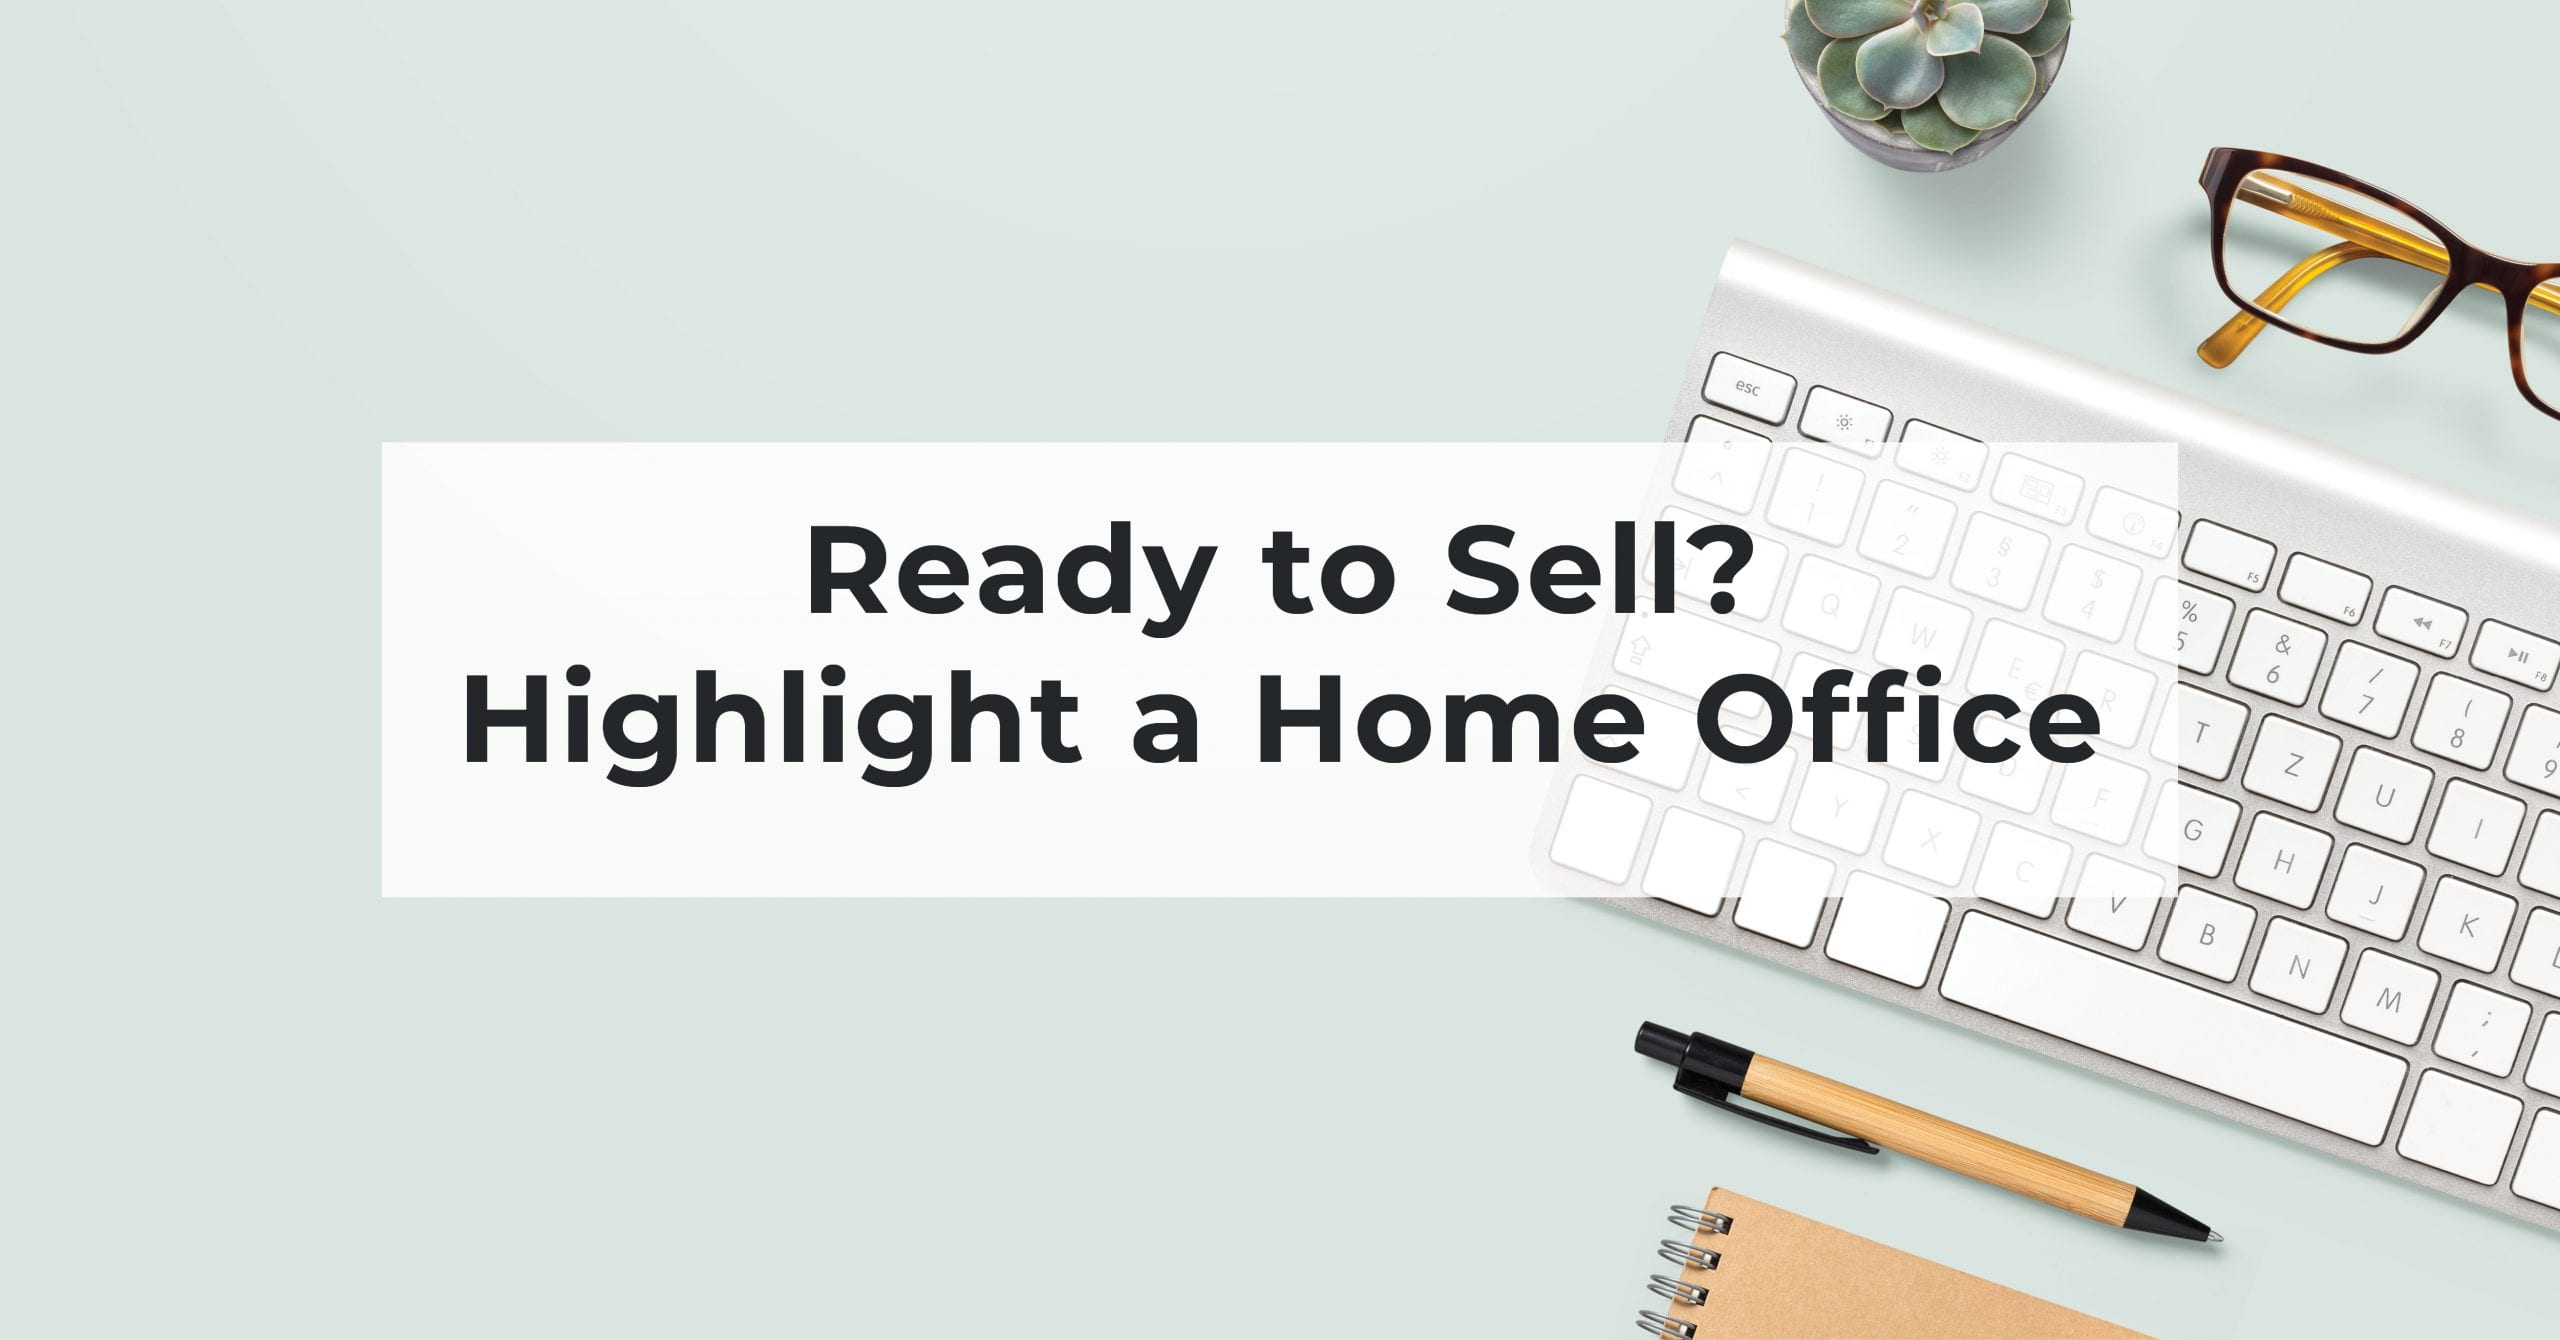 Ready To Sell? Highlight a Home Office